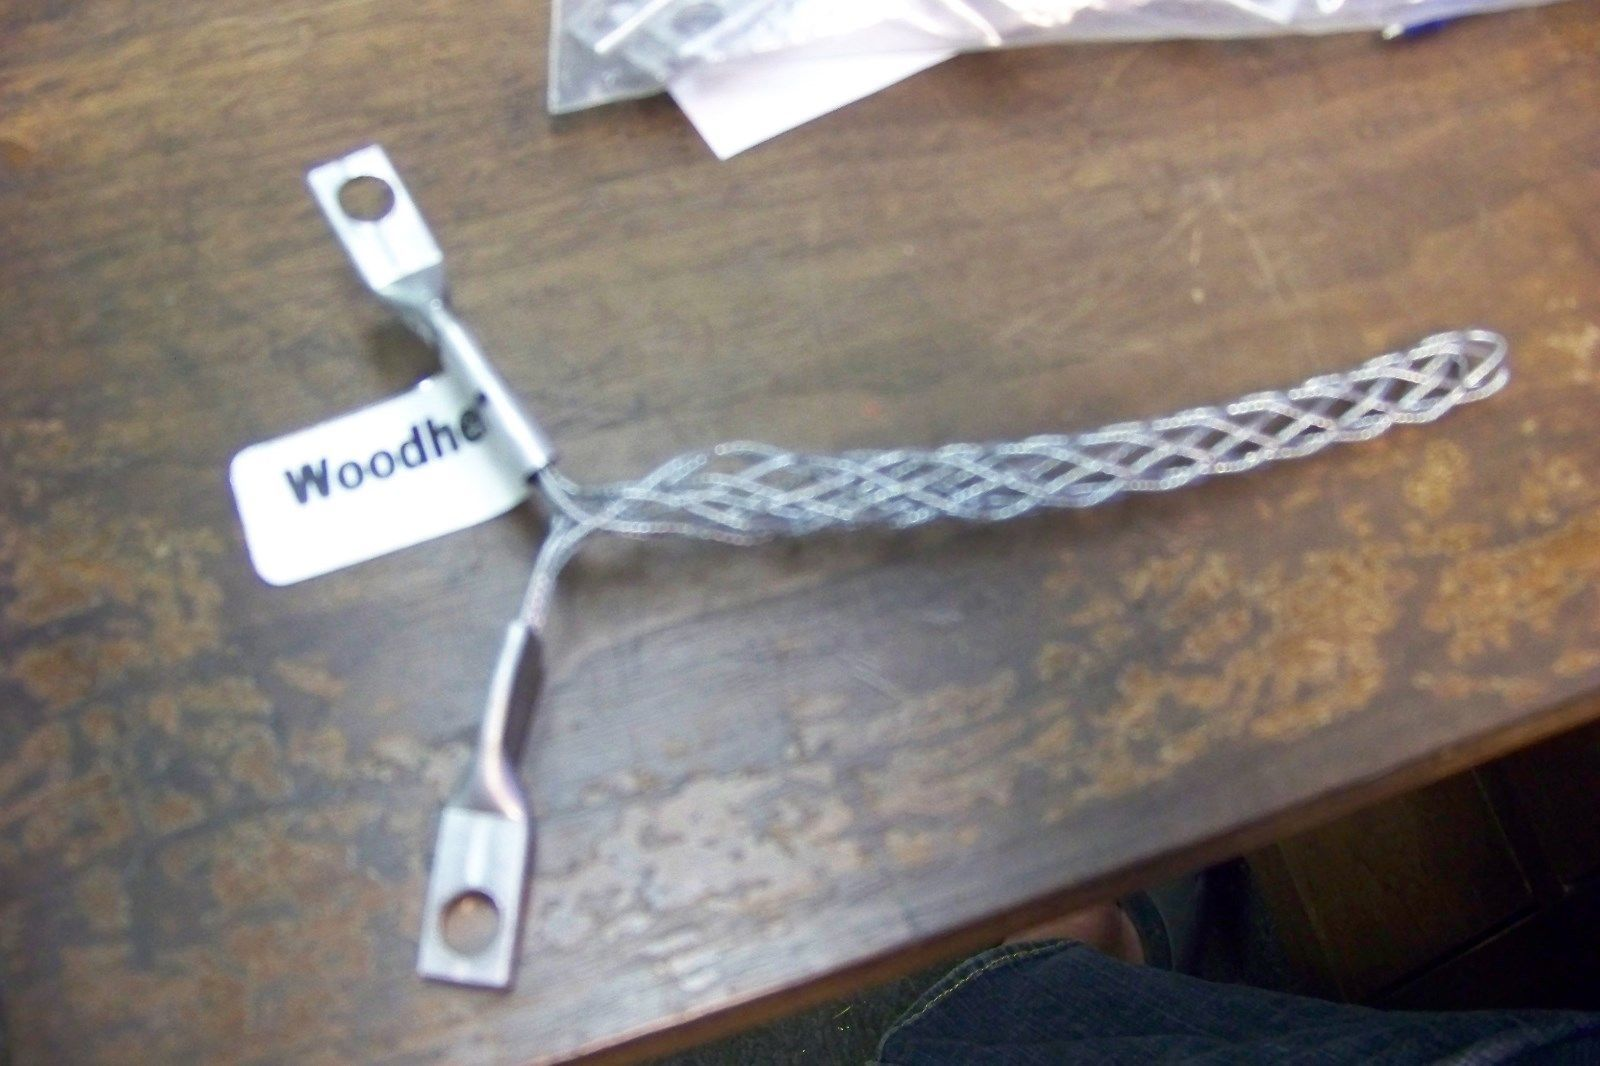 new Woodhead 36551 Steel Wire Mesh Grip, and 50 similar items